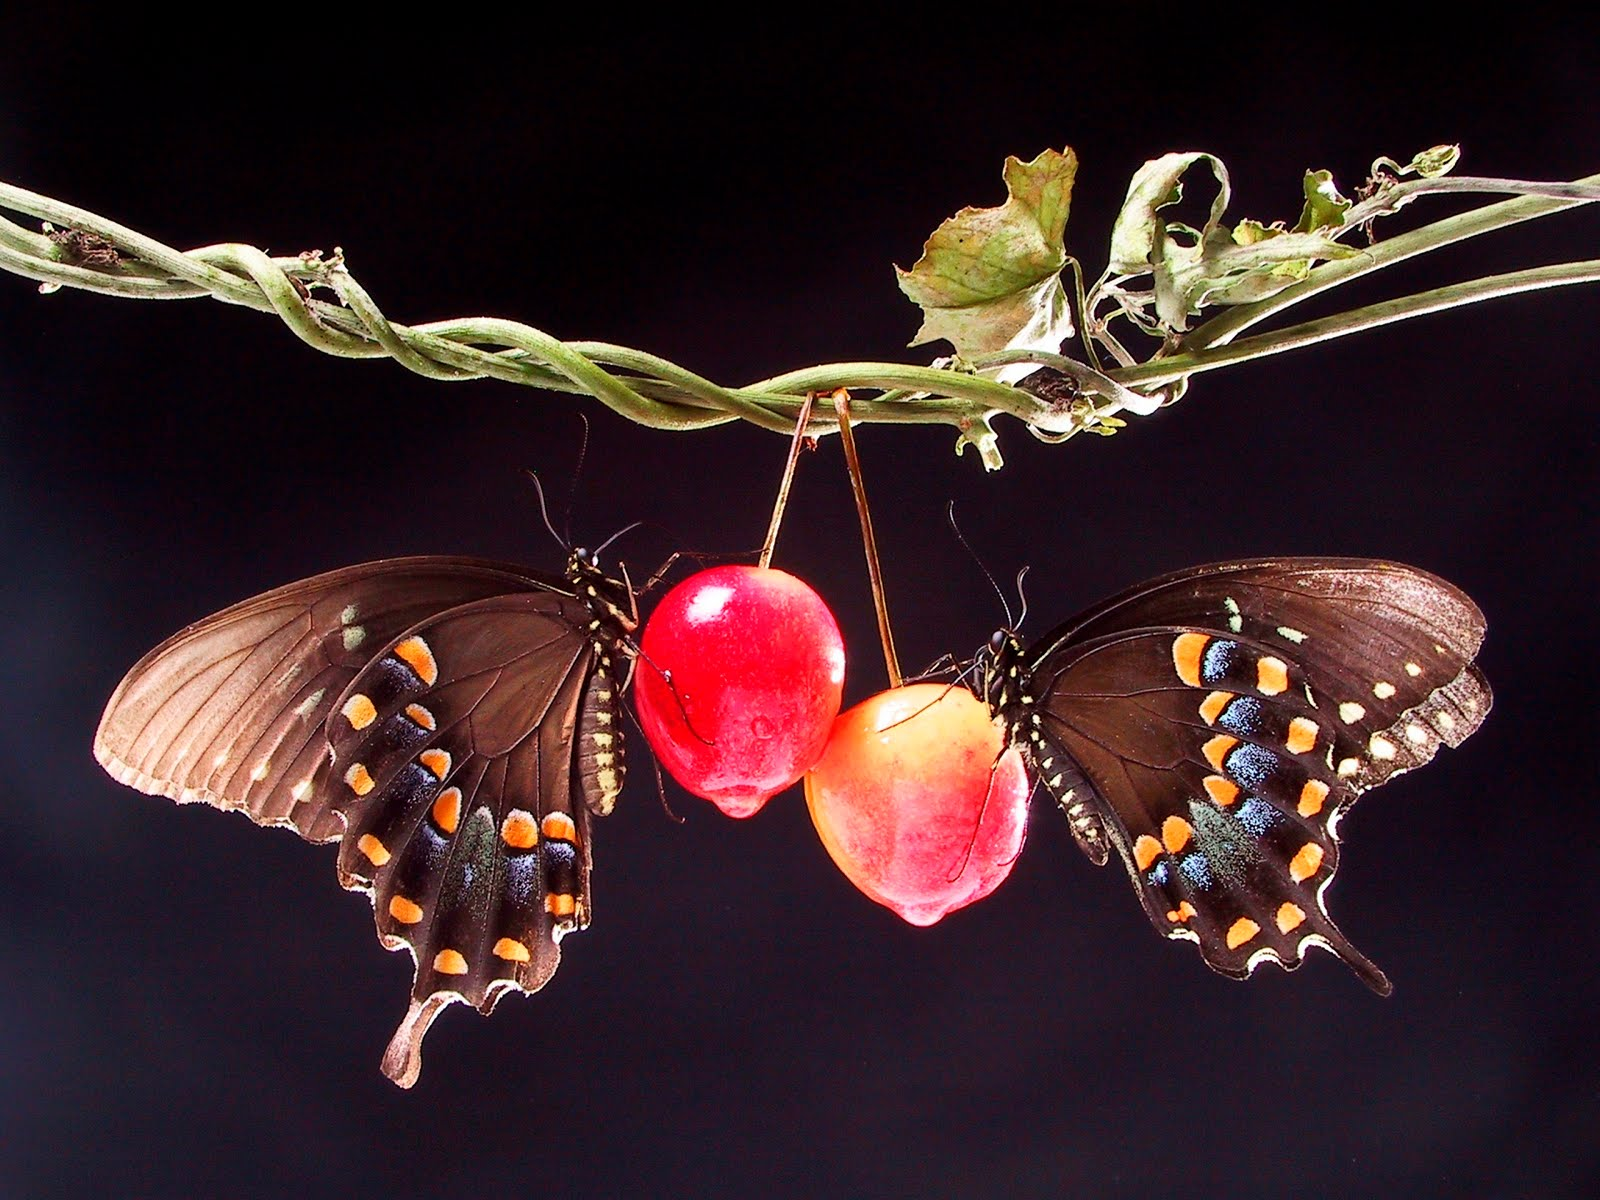 Two Butterflies in Love Wallpaper